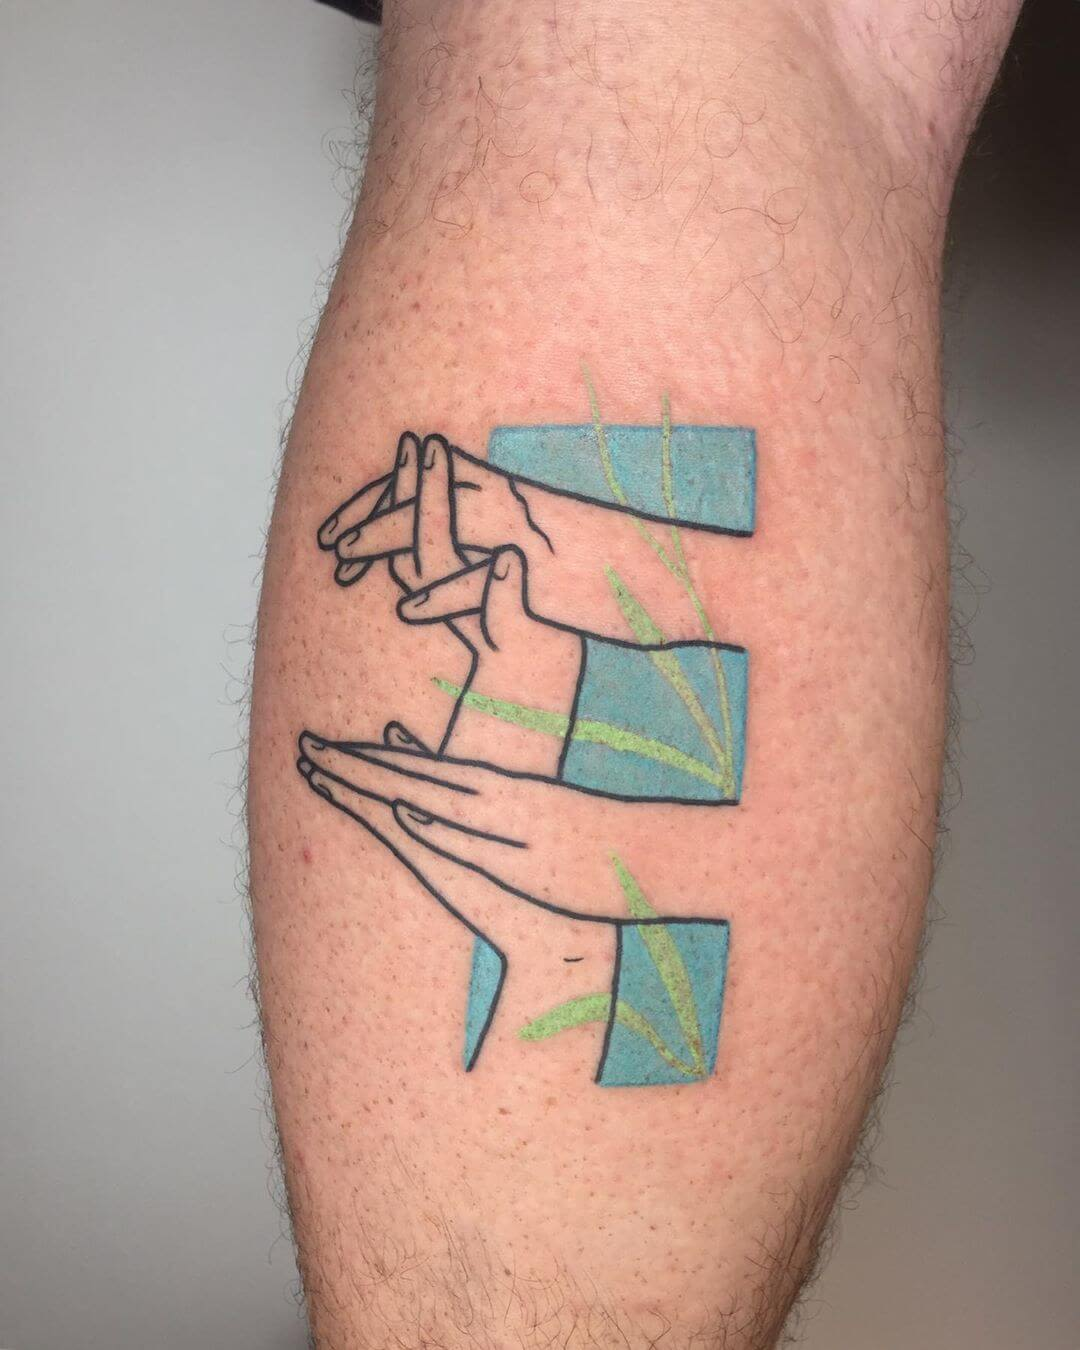 Hands making signs tattoo by Blaabad